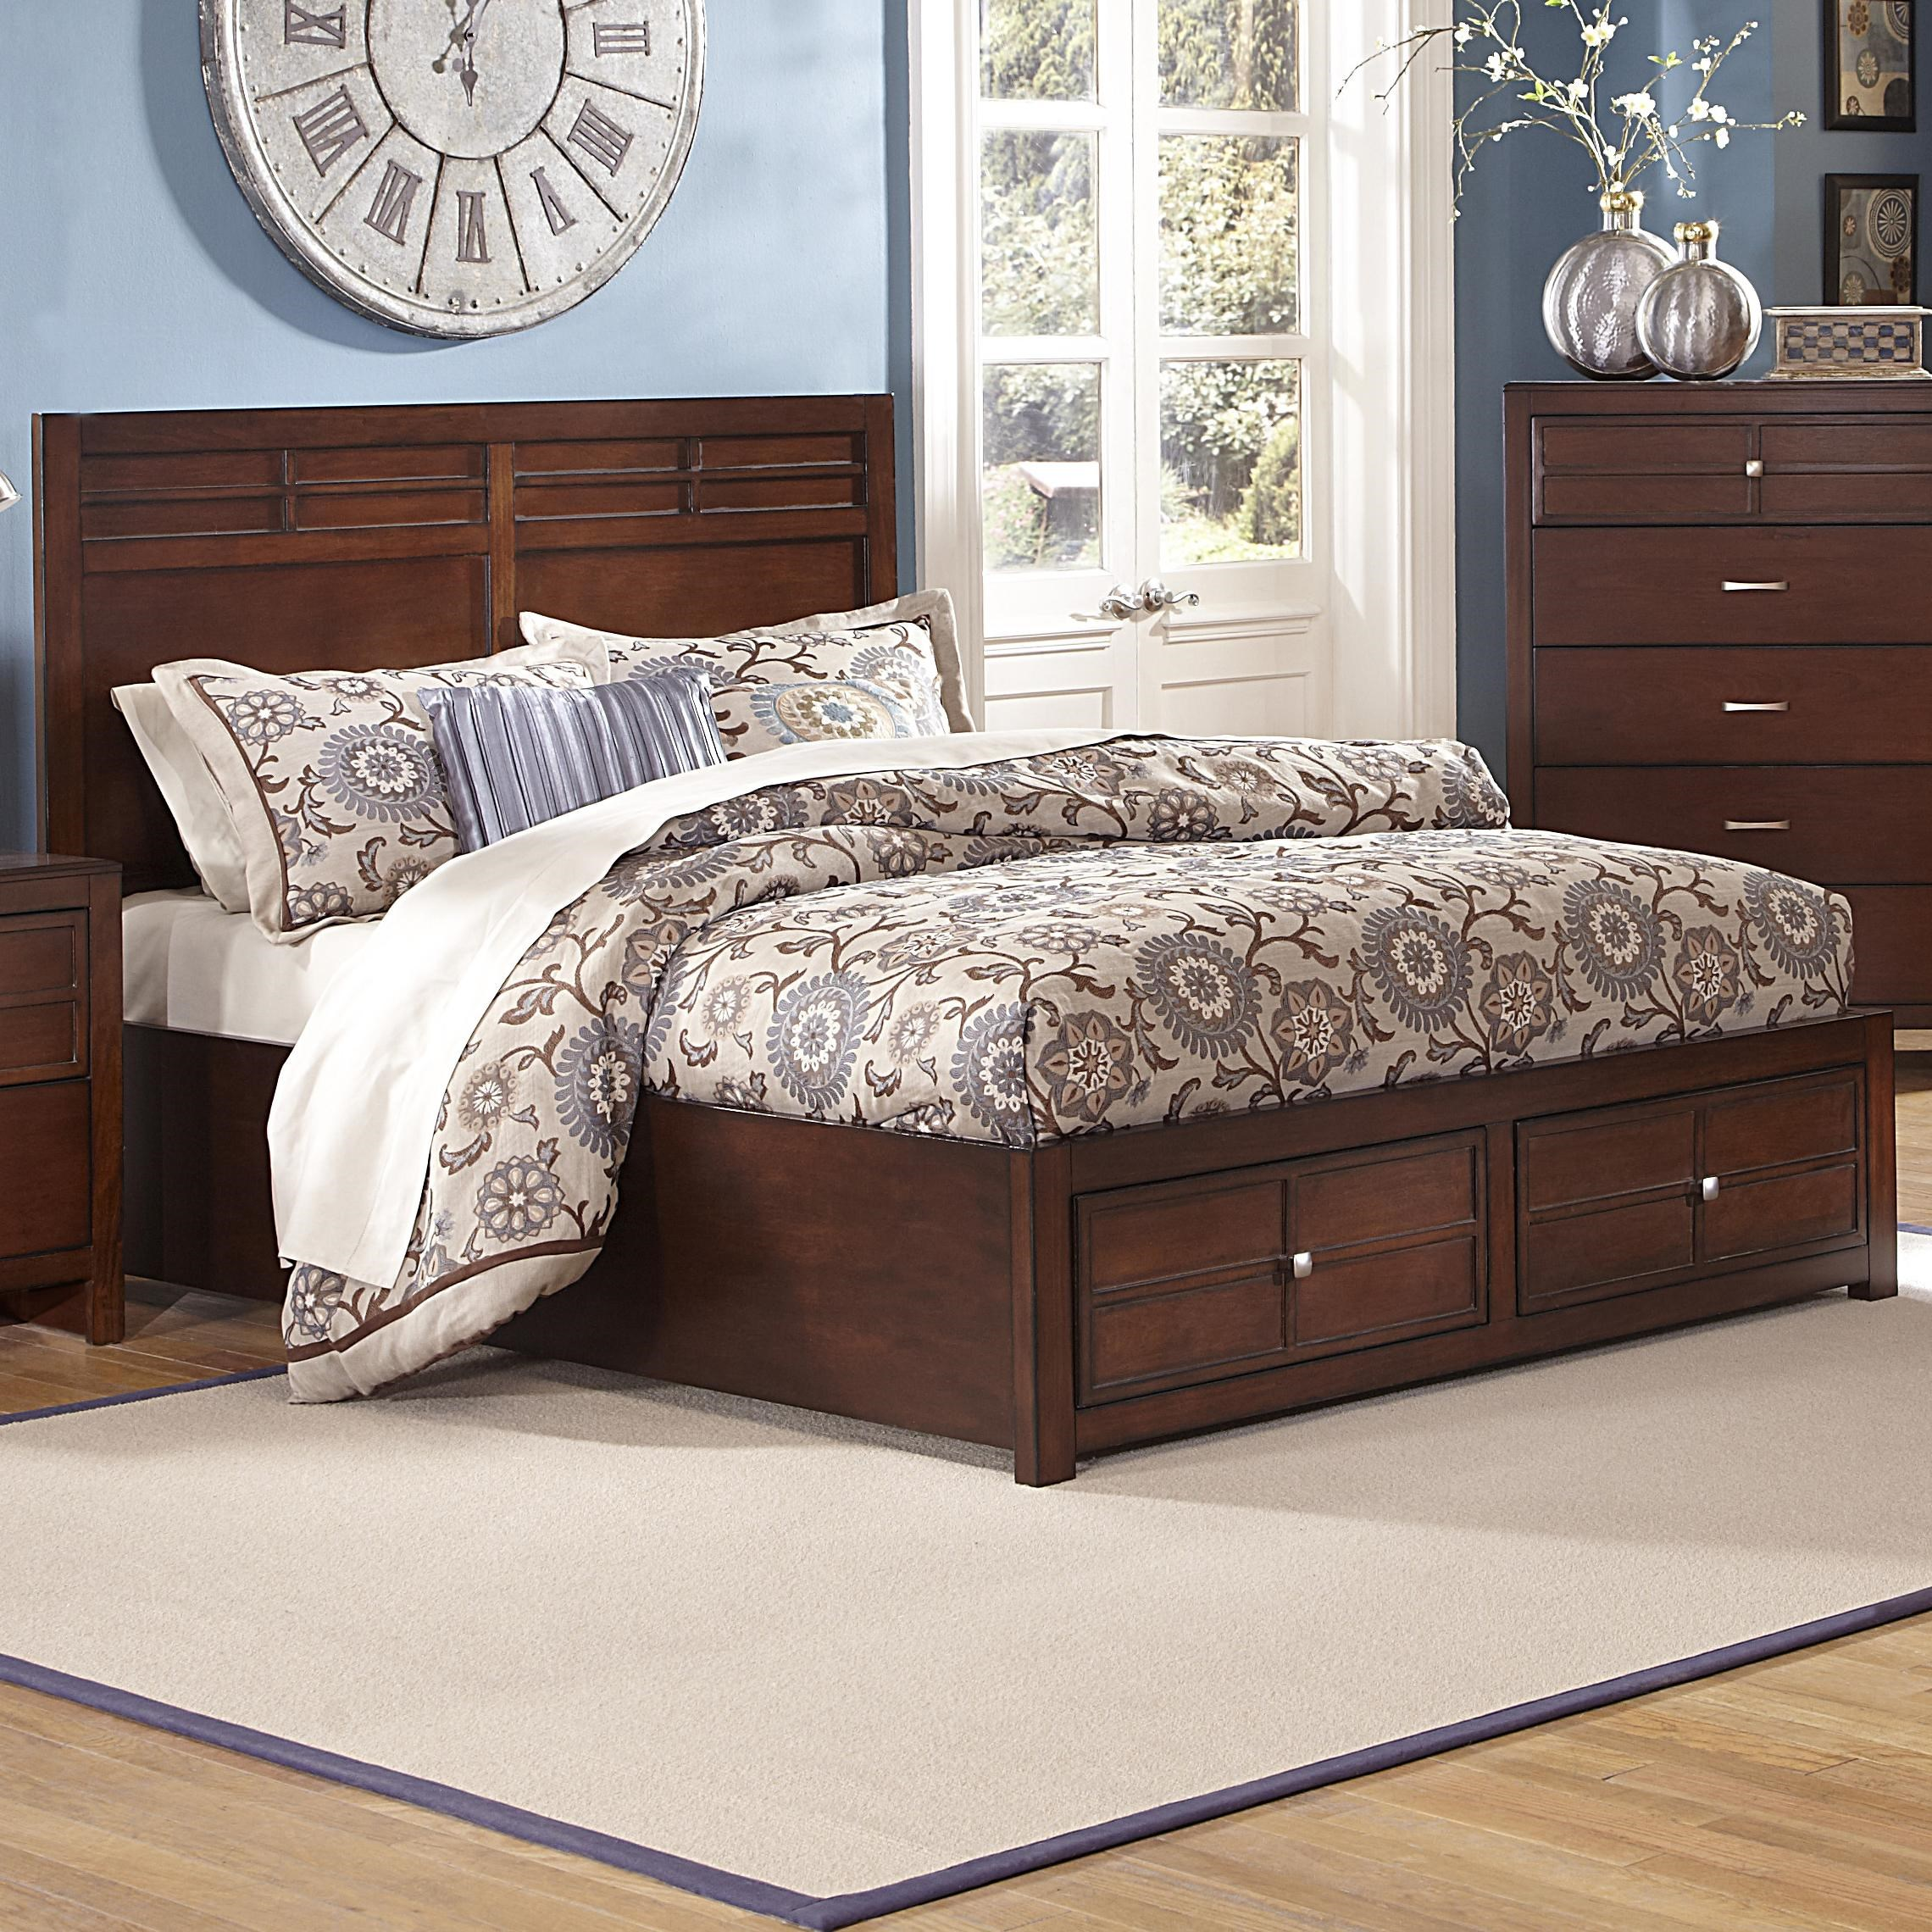 New Classic Kensington Queen Low Profile Bed With Storage Footboard